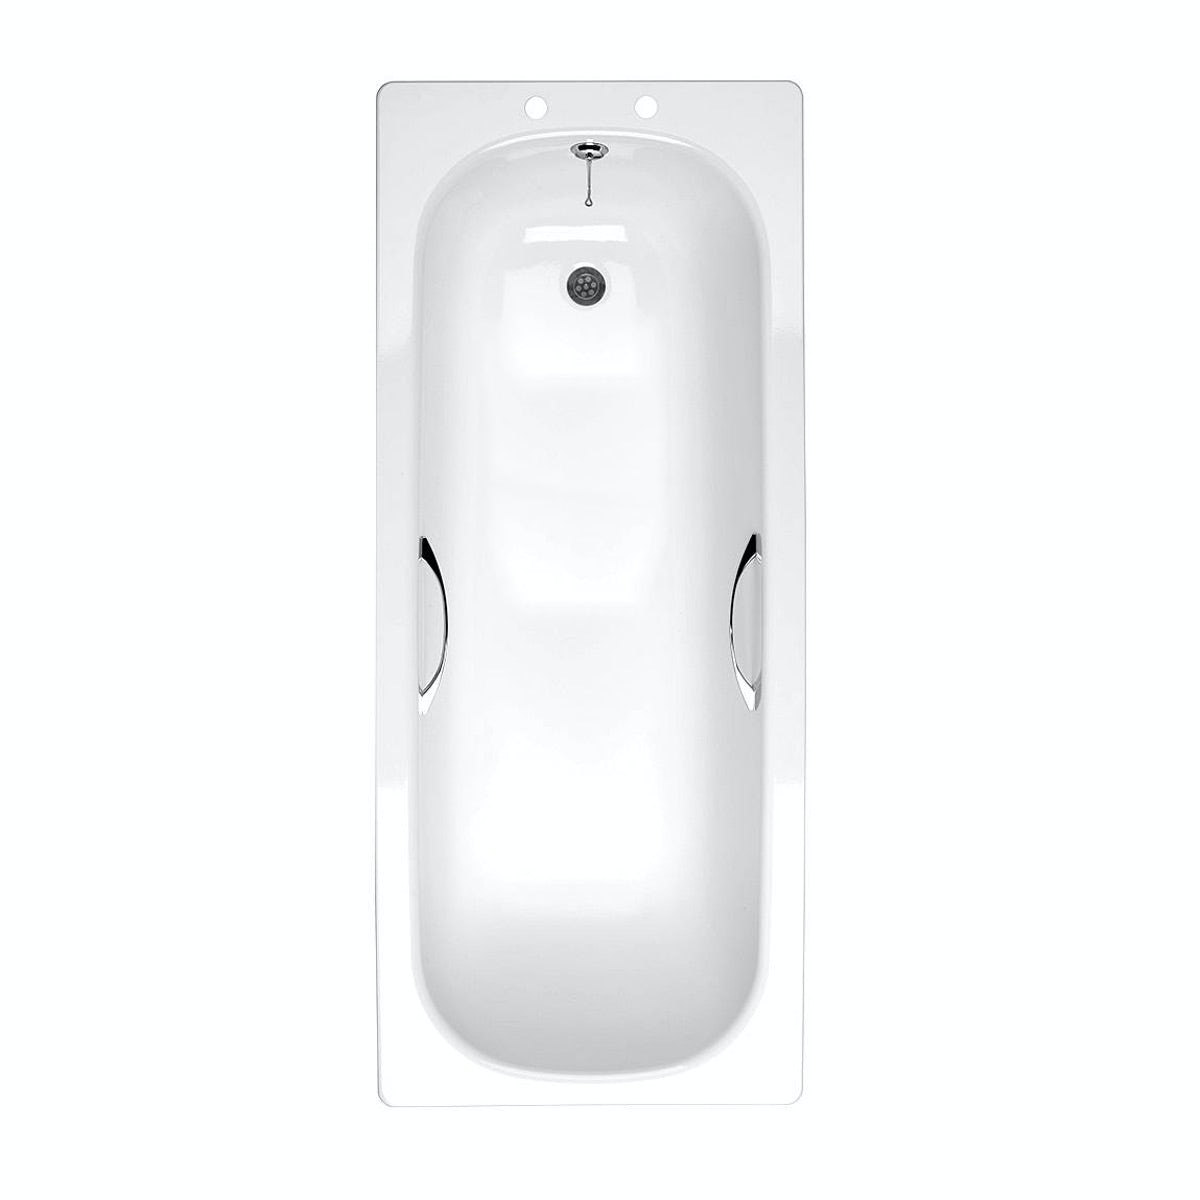 Clarity Steel bath with handle grips 1700 x 700